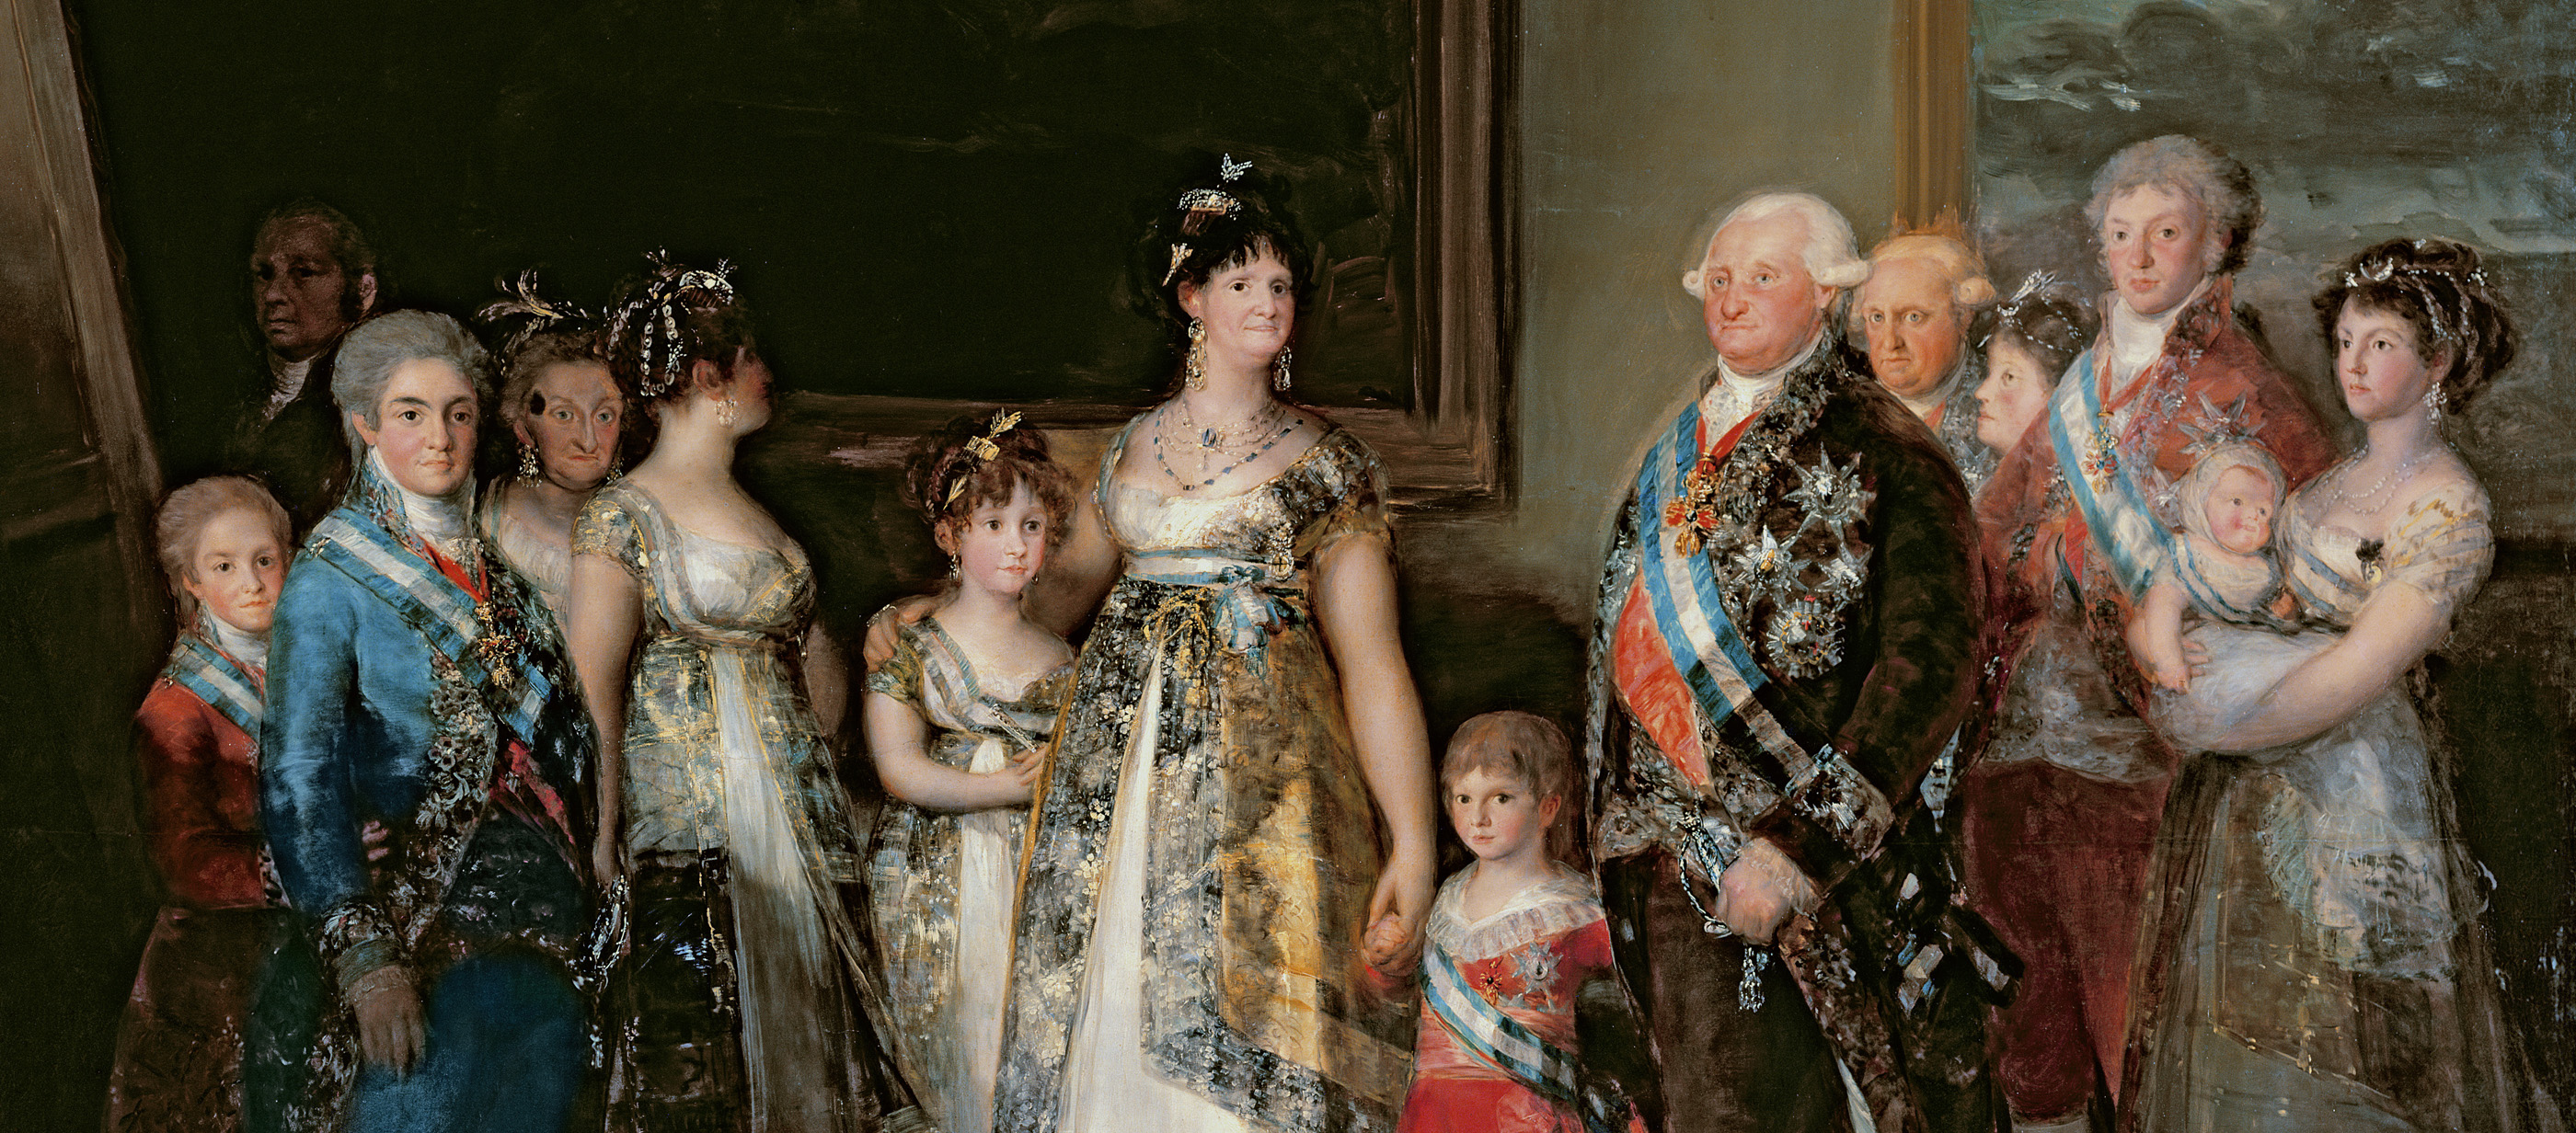 Charles IV and His Family, by Francisco José de Goya y Lucientes, 1800. Prado Museum, Madrid.